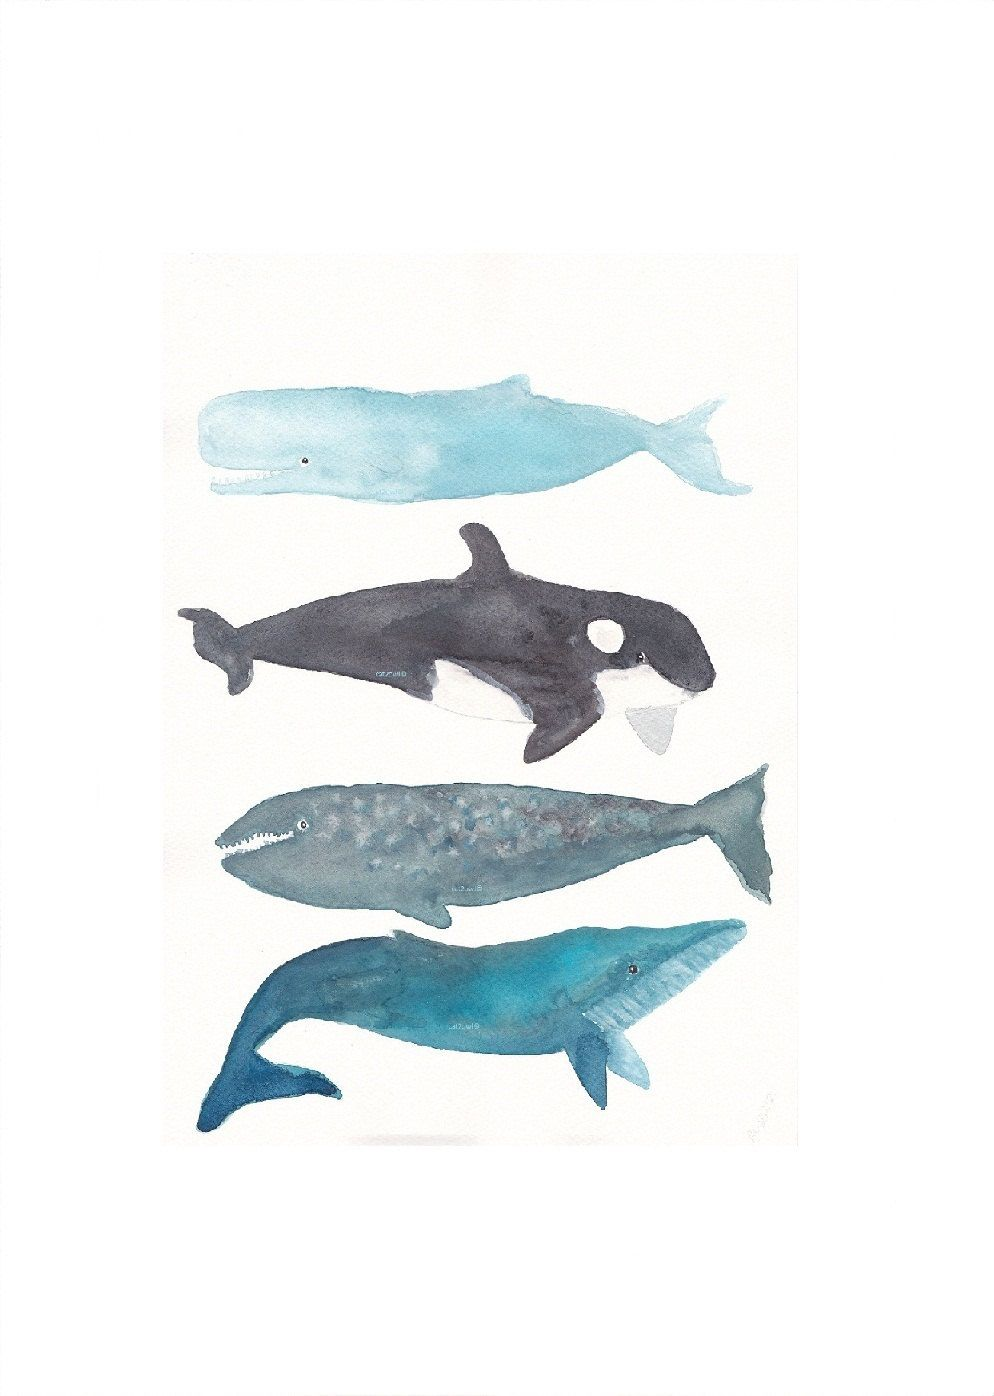 whales a whale collection blue orca gray humpback whales